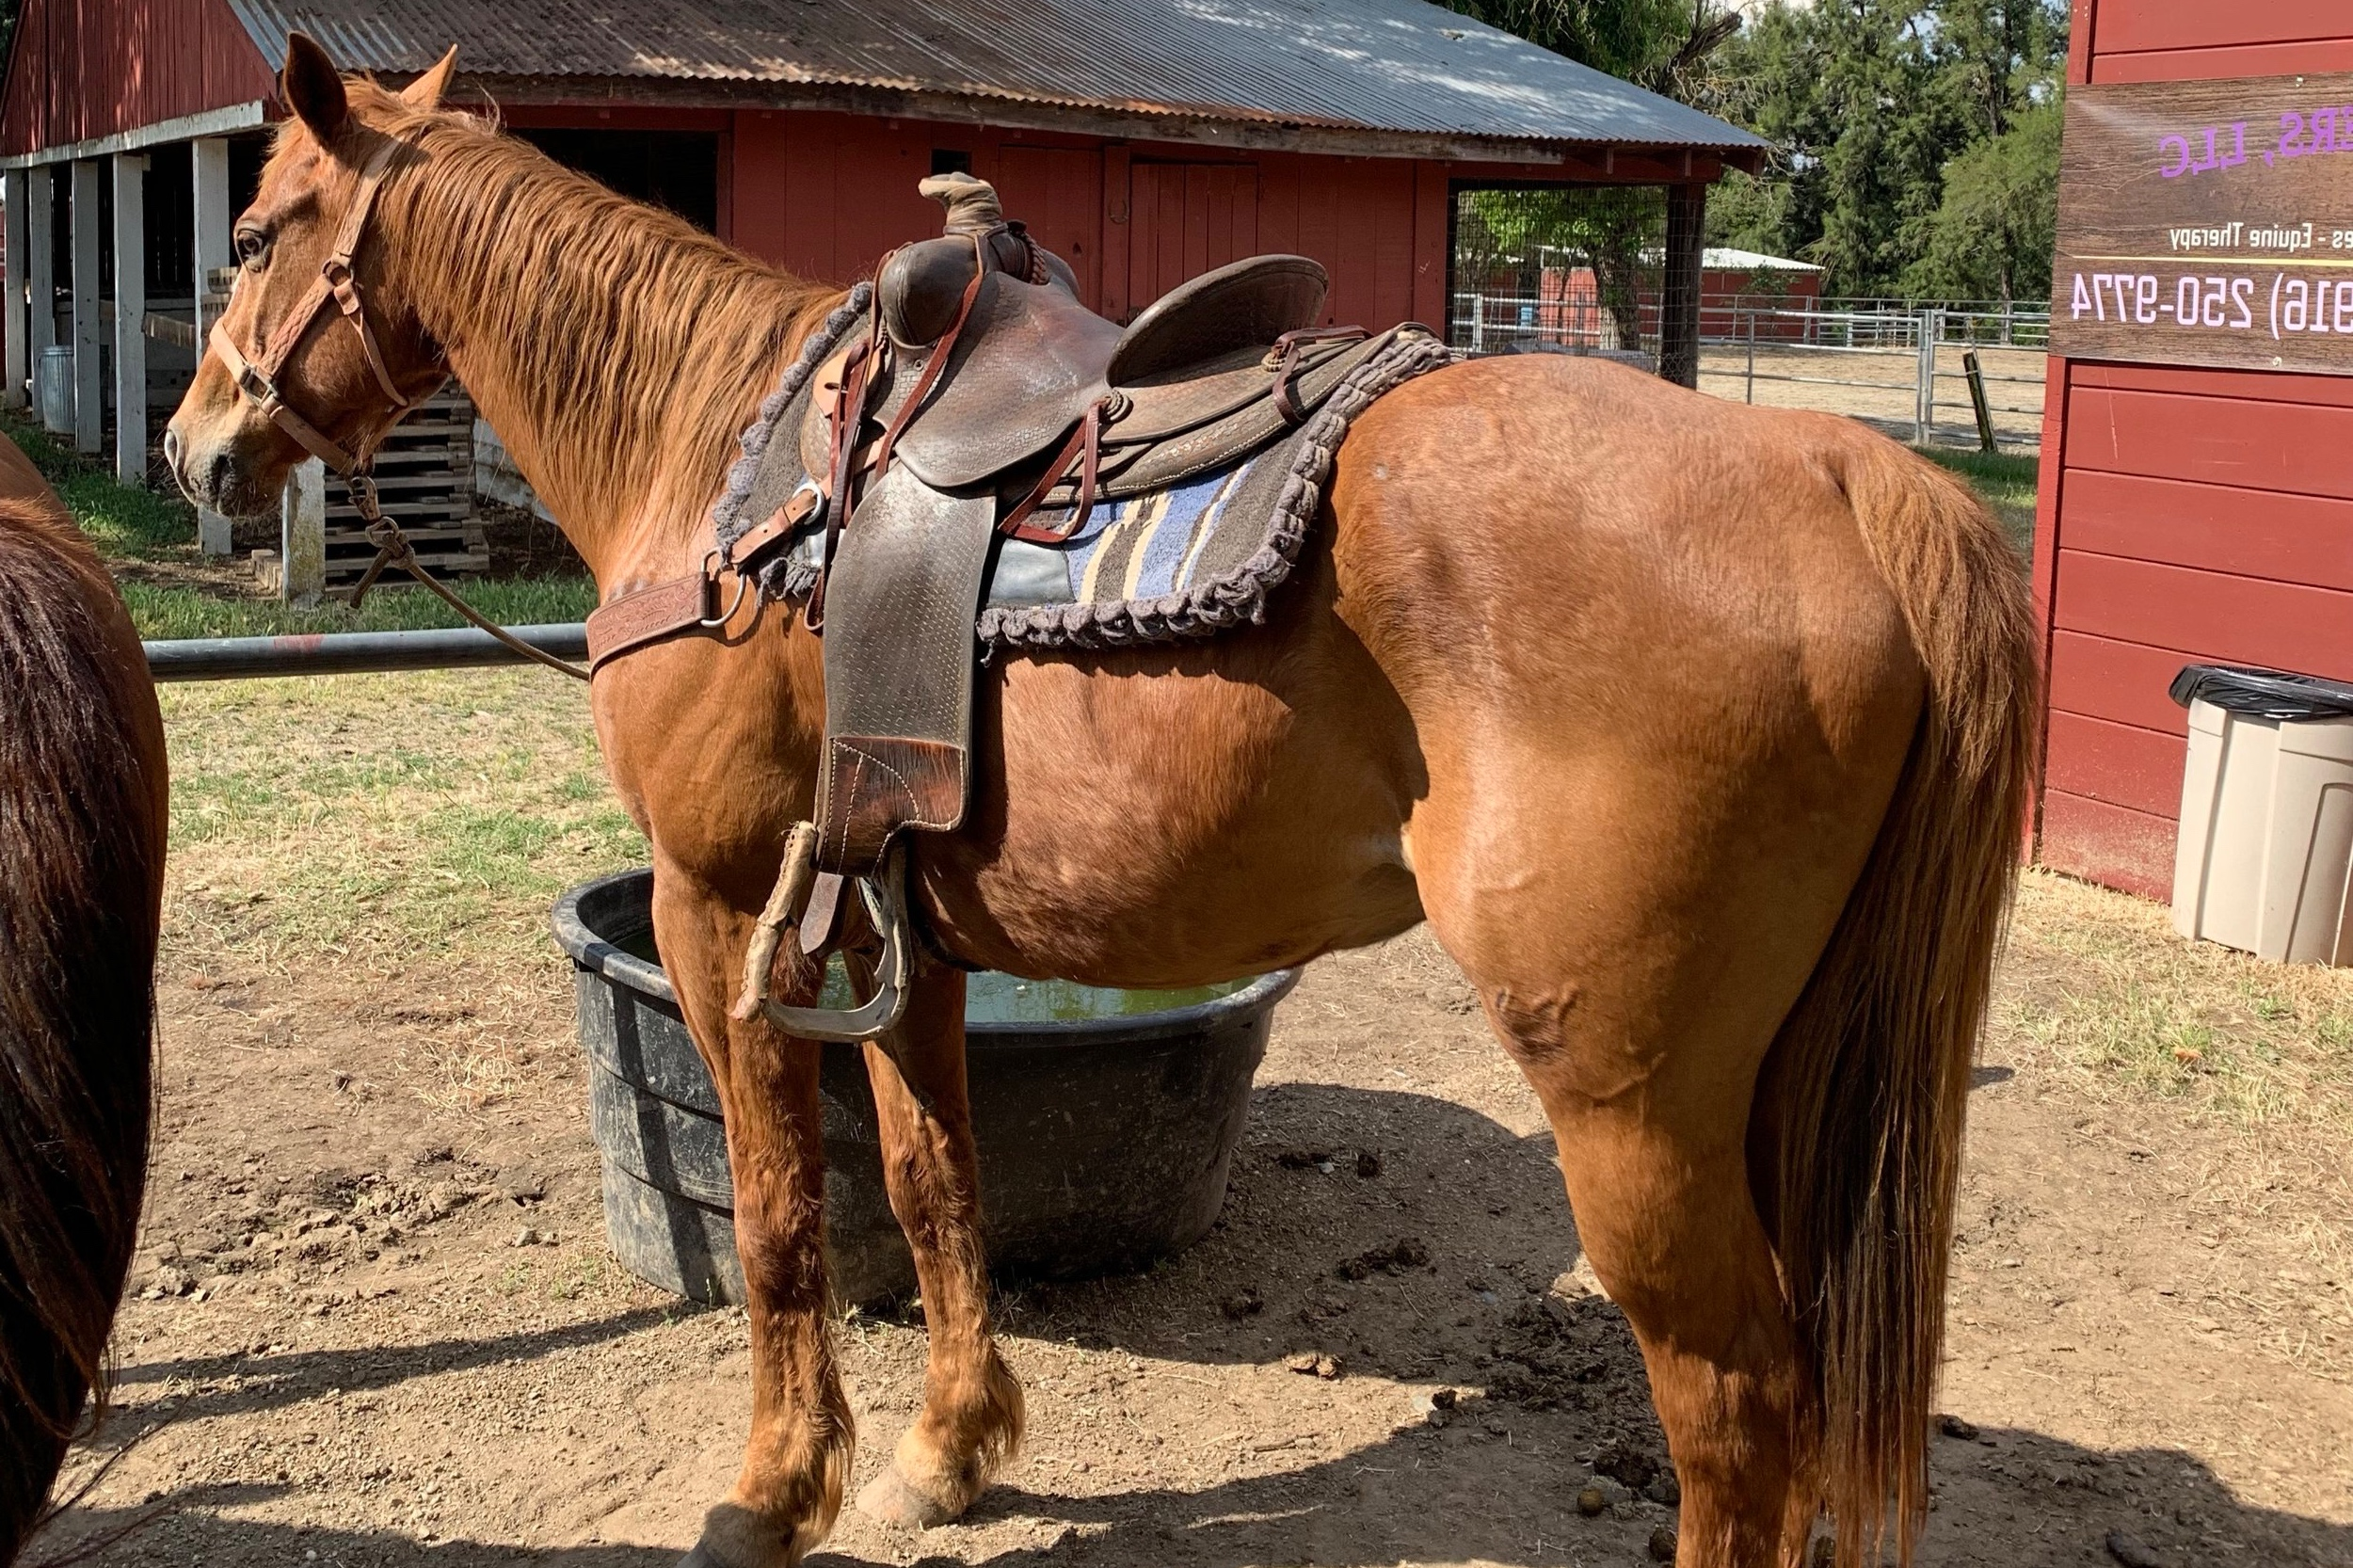 Quincy - Quincy is a sweet boy, very sensitive and needs his riders to be soft and loving. he is a talented horse with a great deal of training! an amazing horse for a confident yet soft handed rider. like all of our horses, he loves to be groomed.